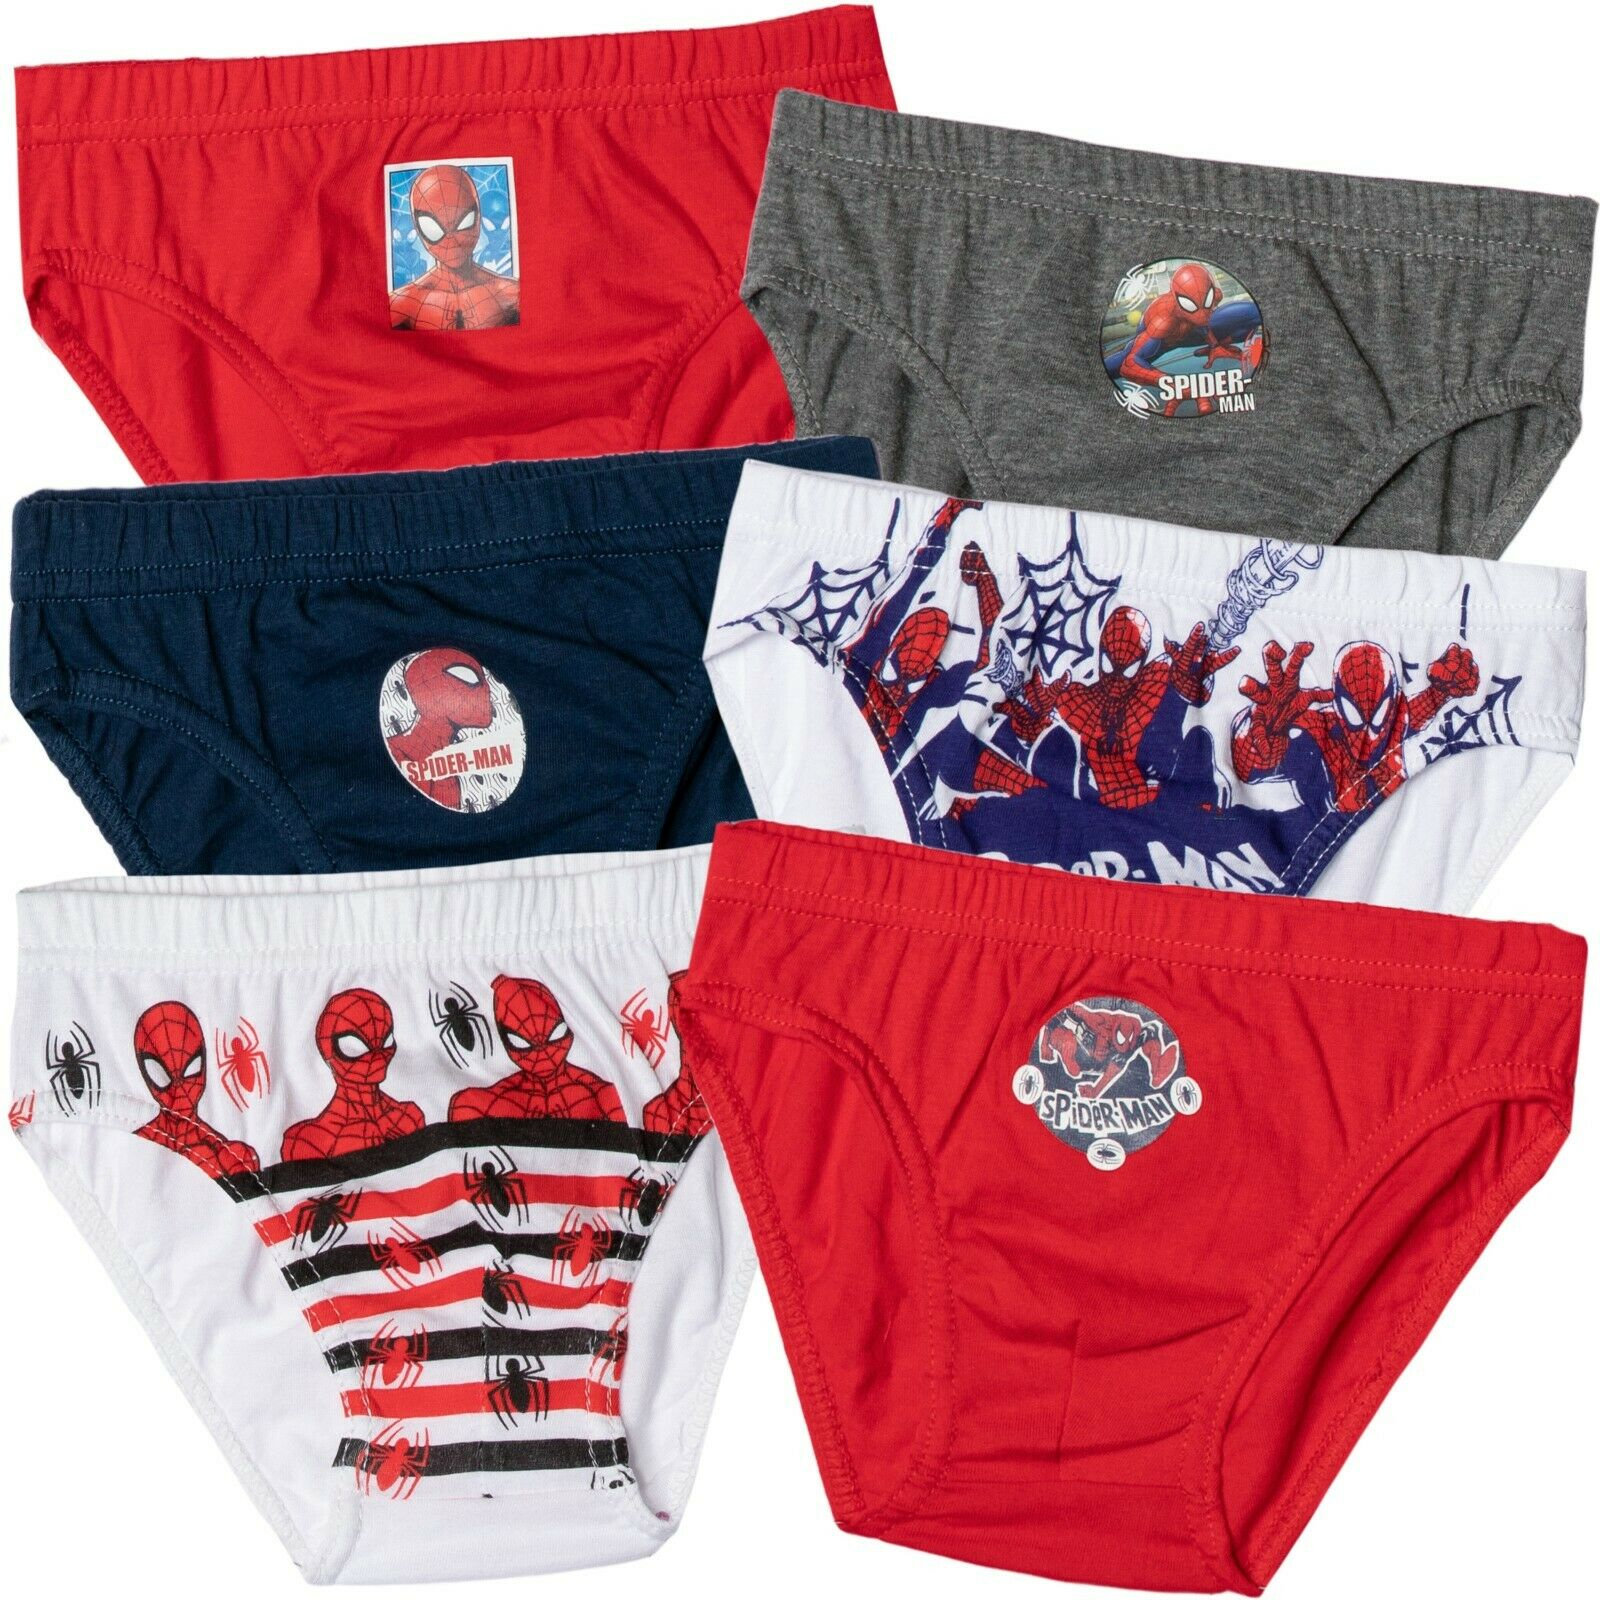 Marvel Spiderman Spidey Boys 6 Pack Briefs Underpants